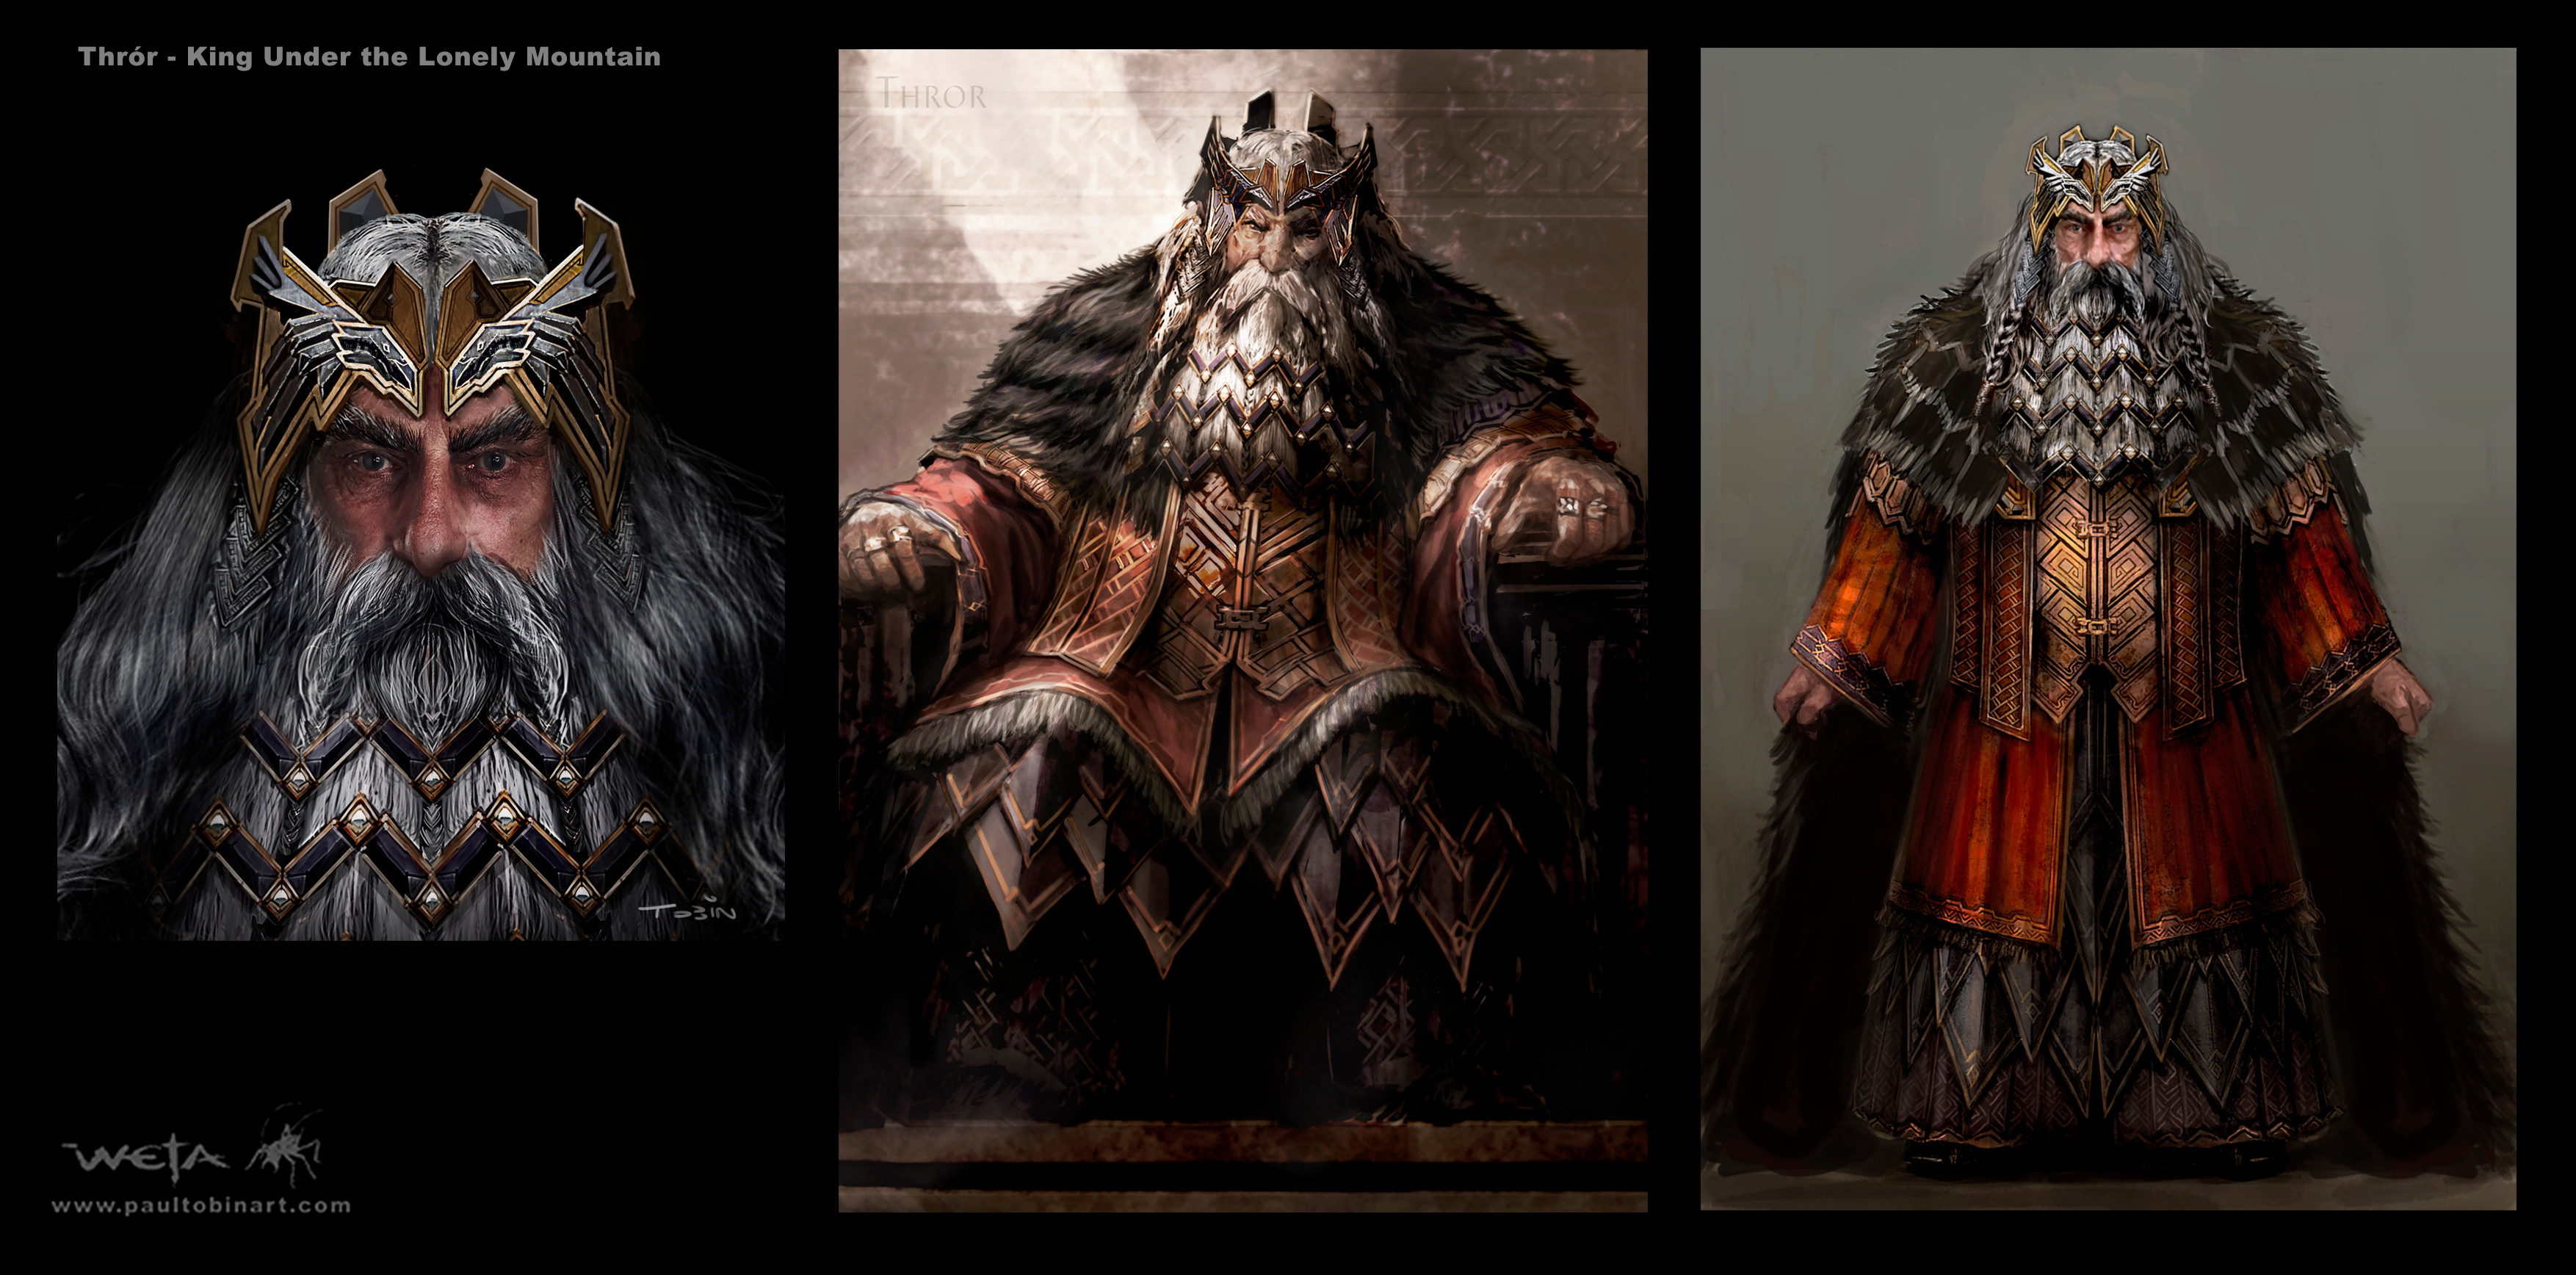 Concept art from The Hobbit created by Paul Tobin. Image courtesy of Weta Workshop.